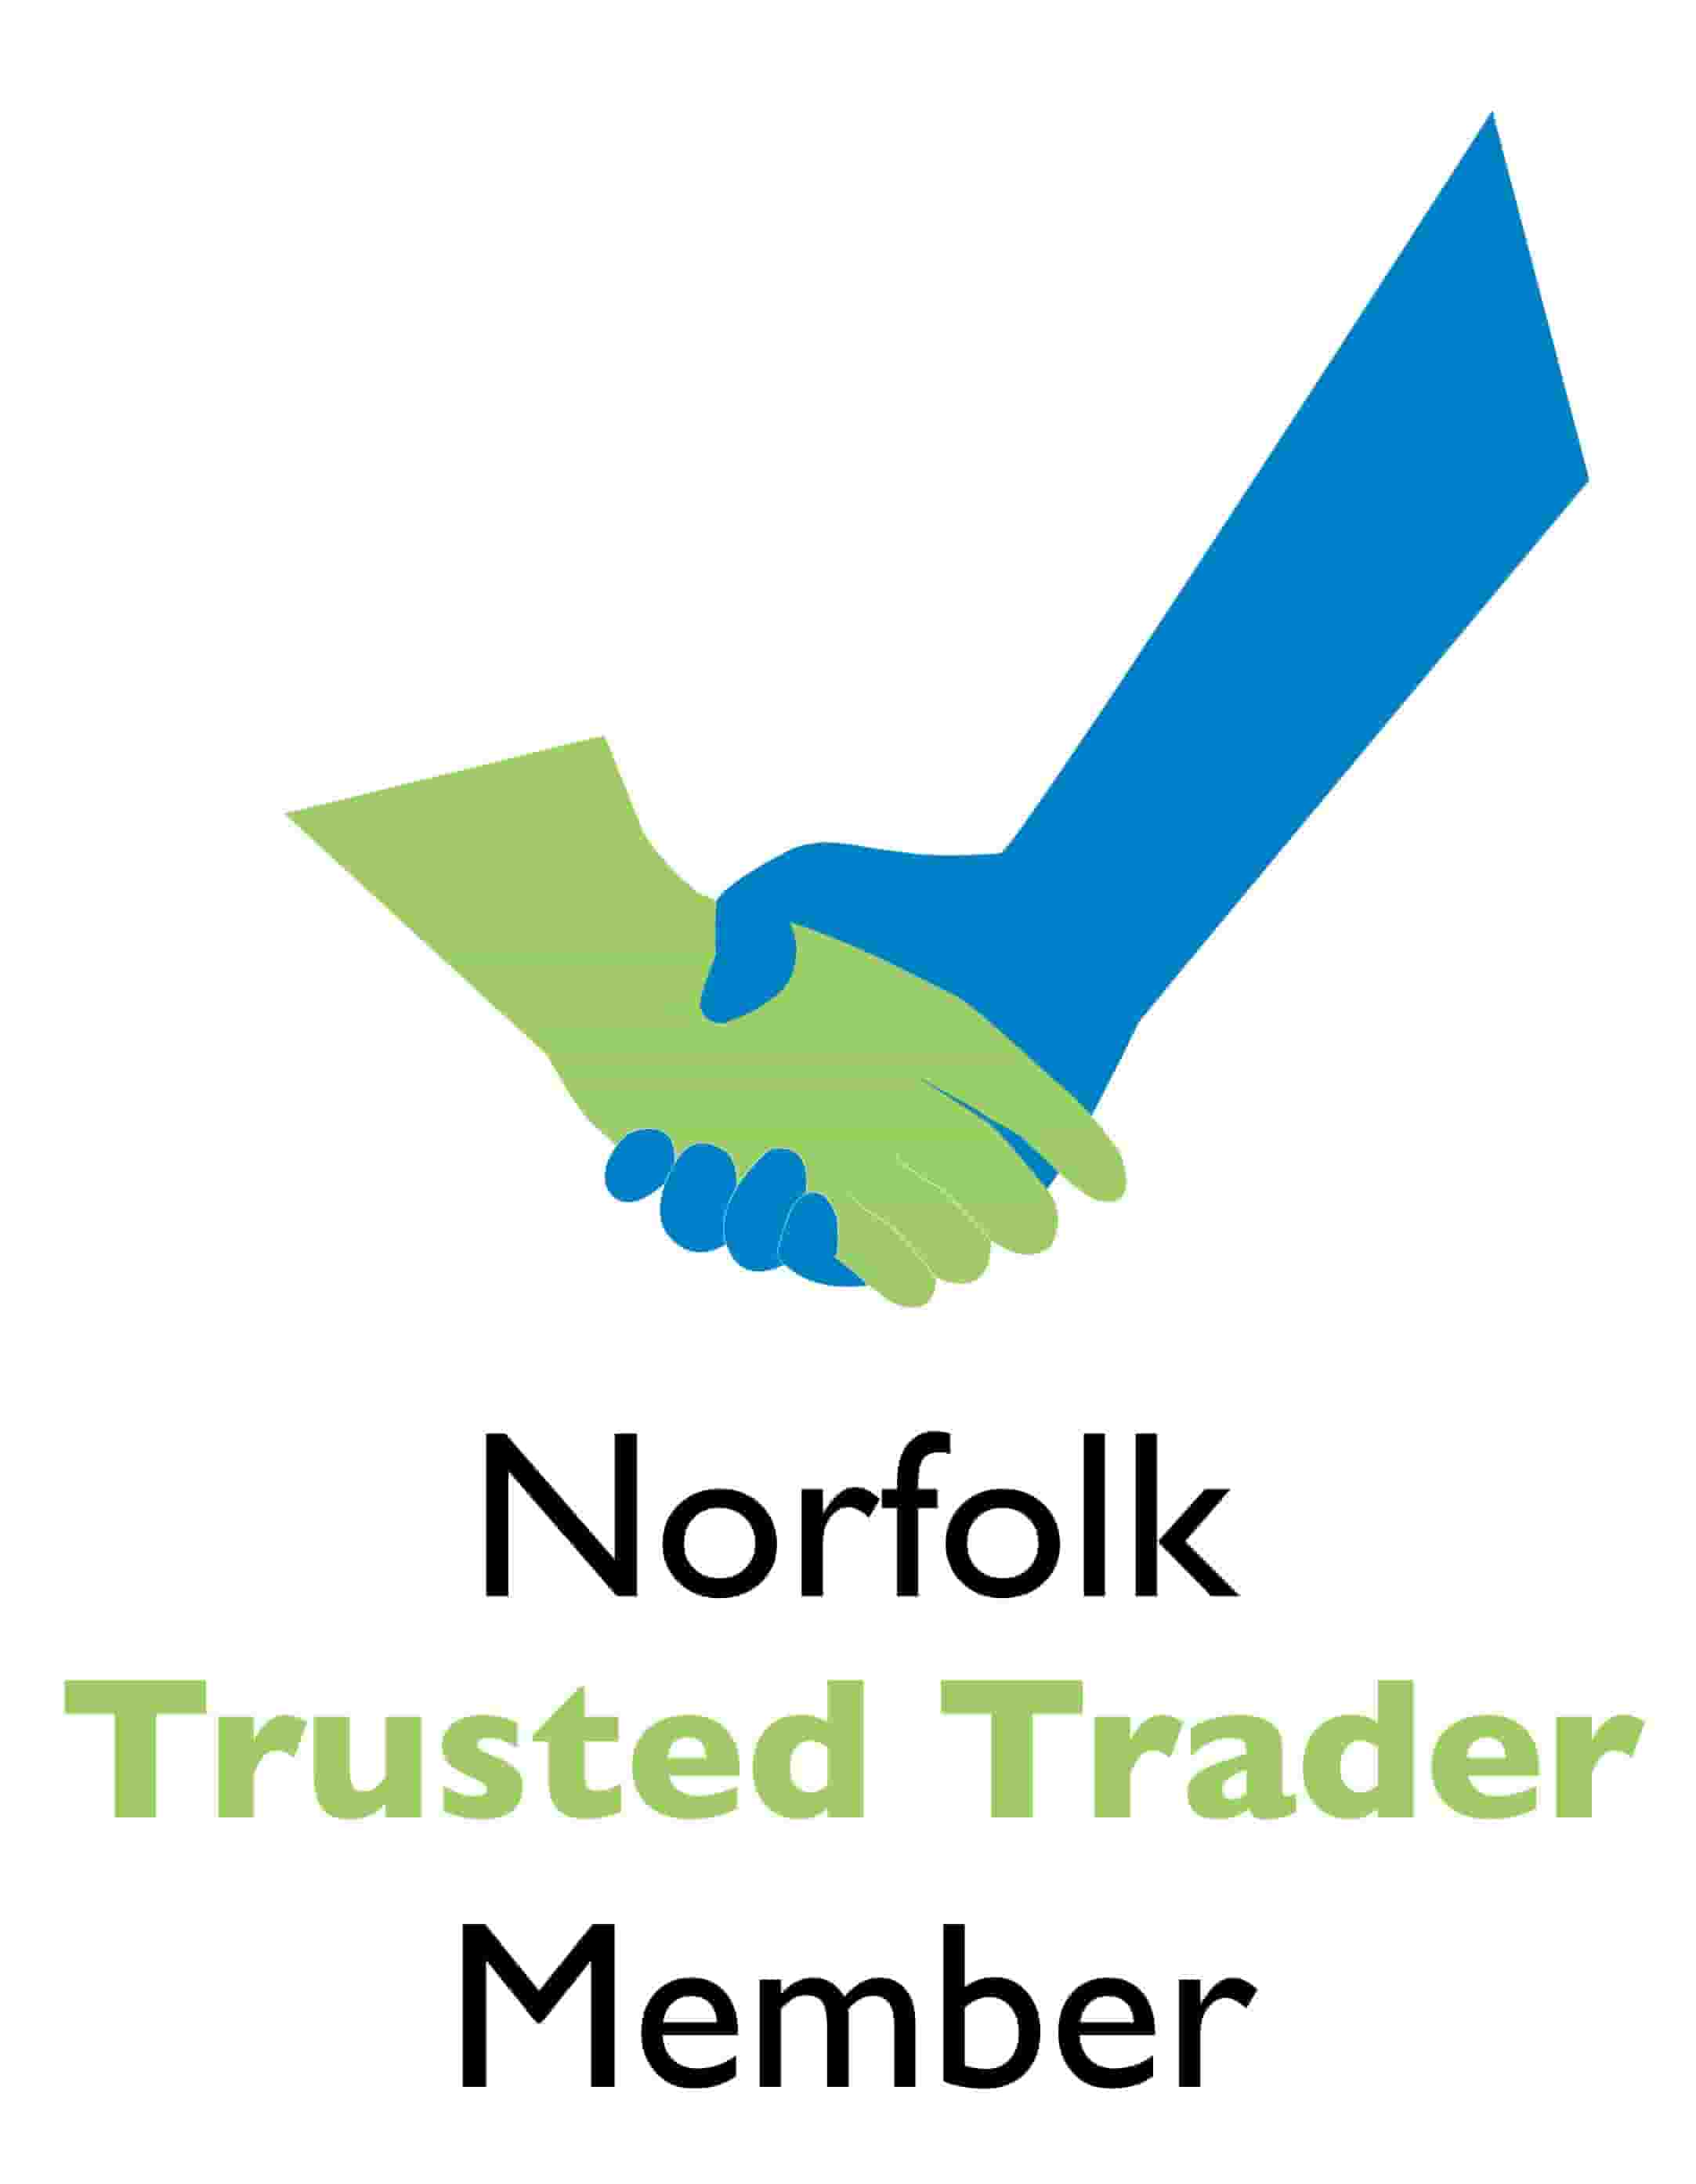 Norfolk Trusted Trader Approved Installer